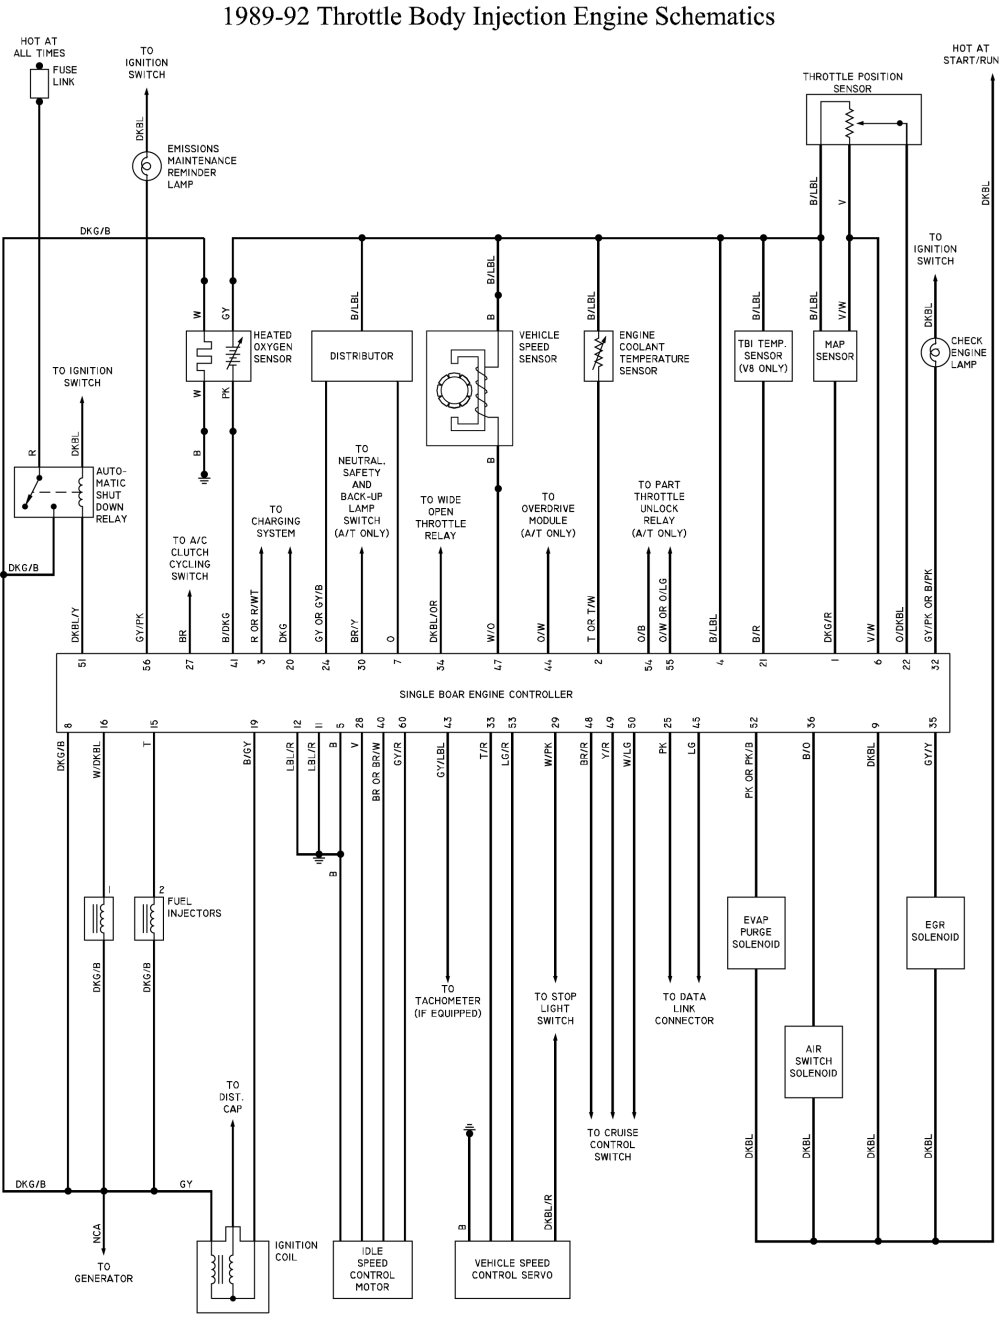 sbec circuit dodge b250 ram van wagon 5 2l 318ci repair Dodge Neon Wire Diagram at gsmportal.co